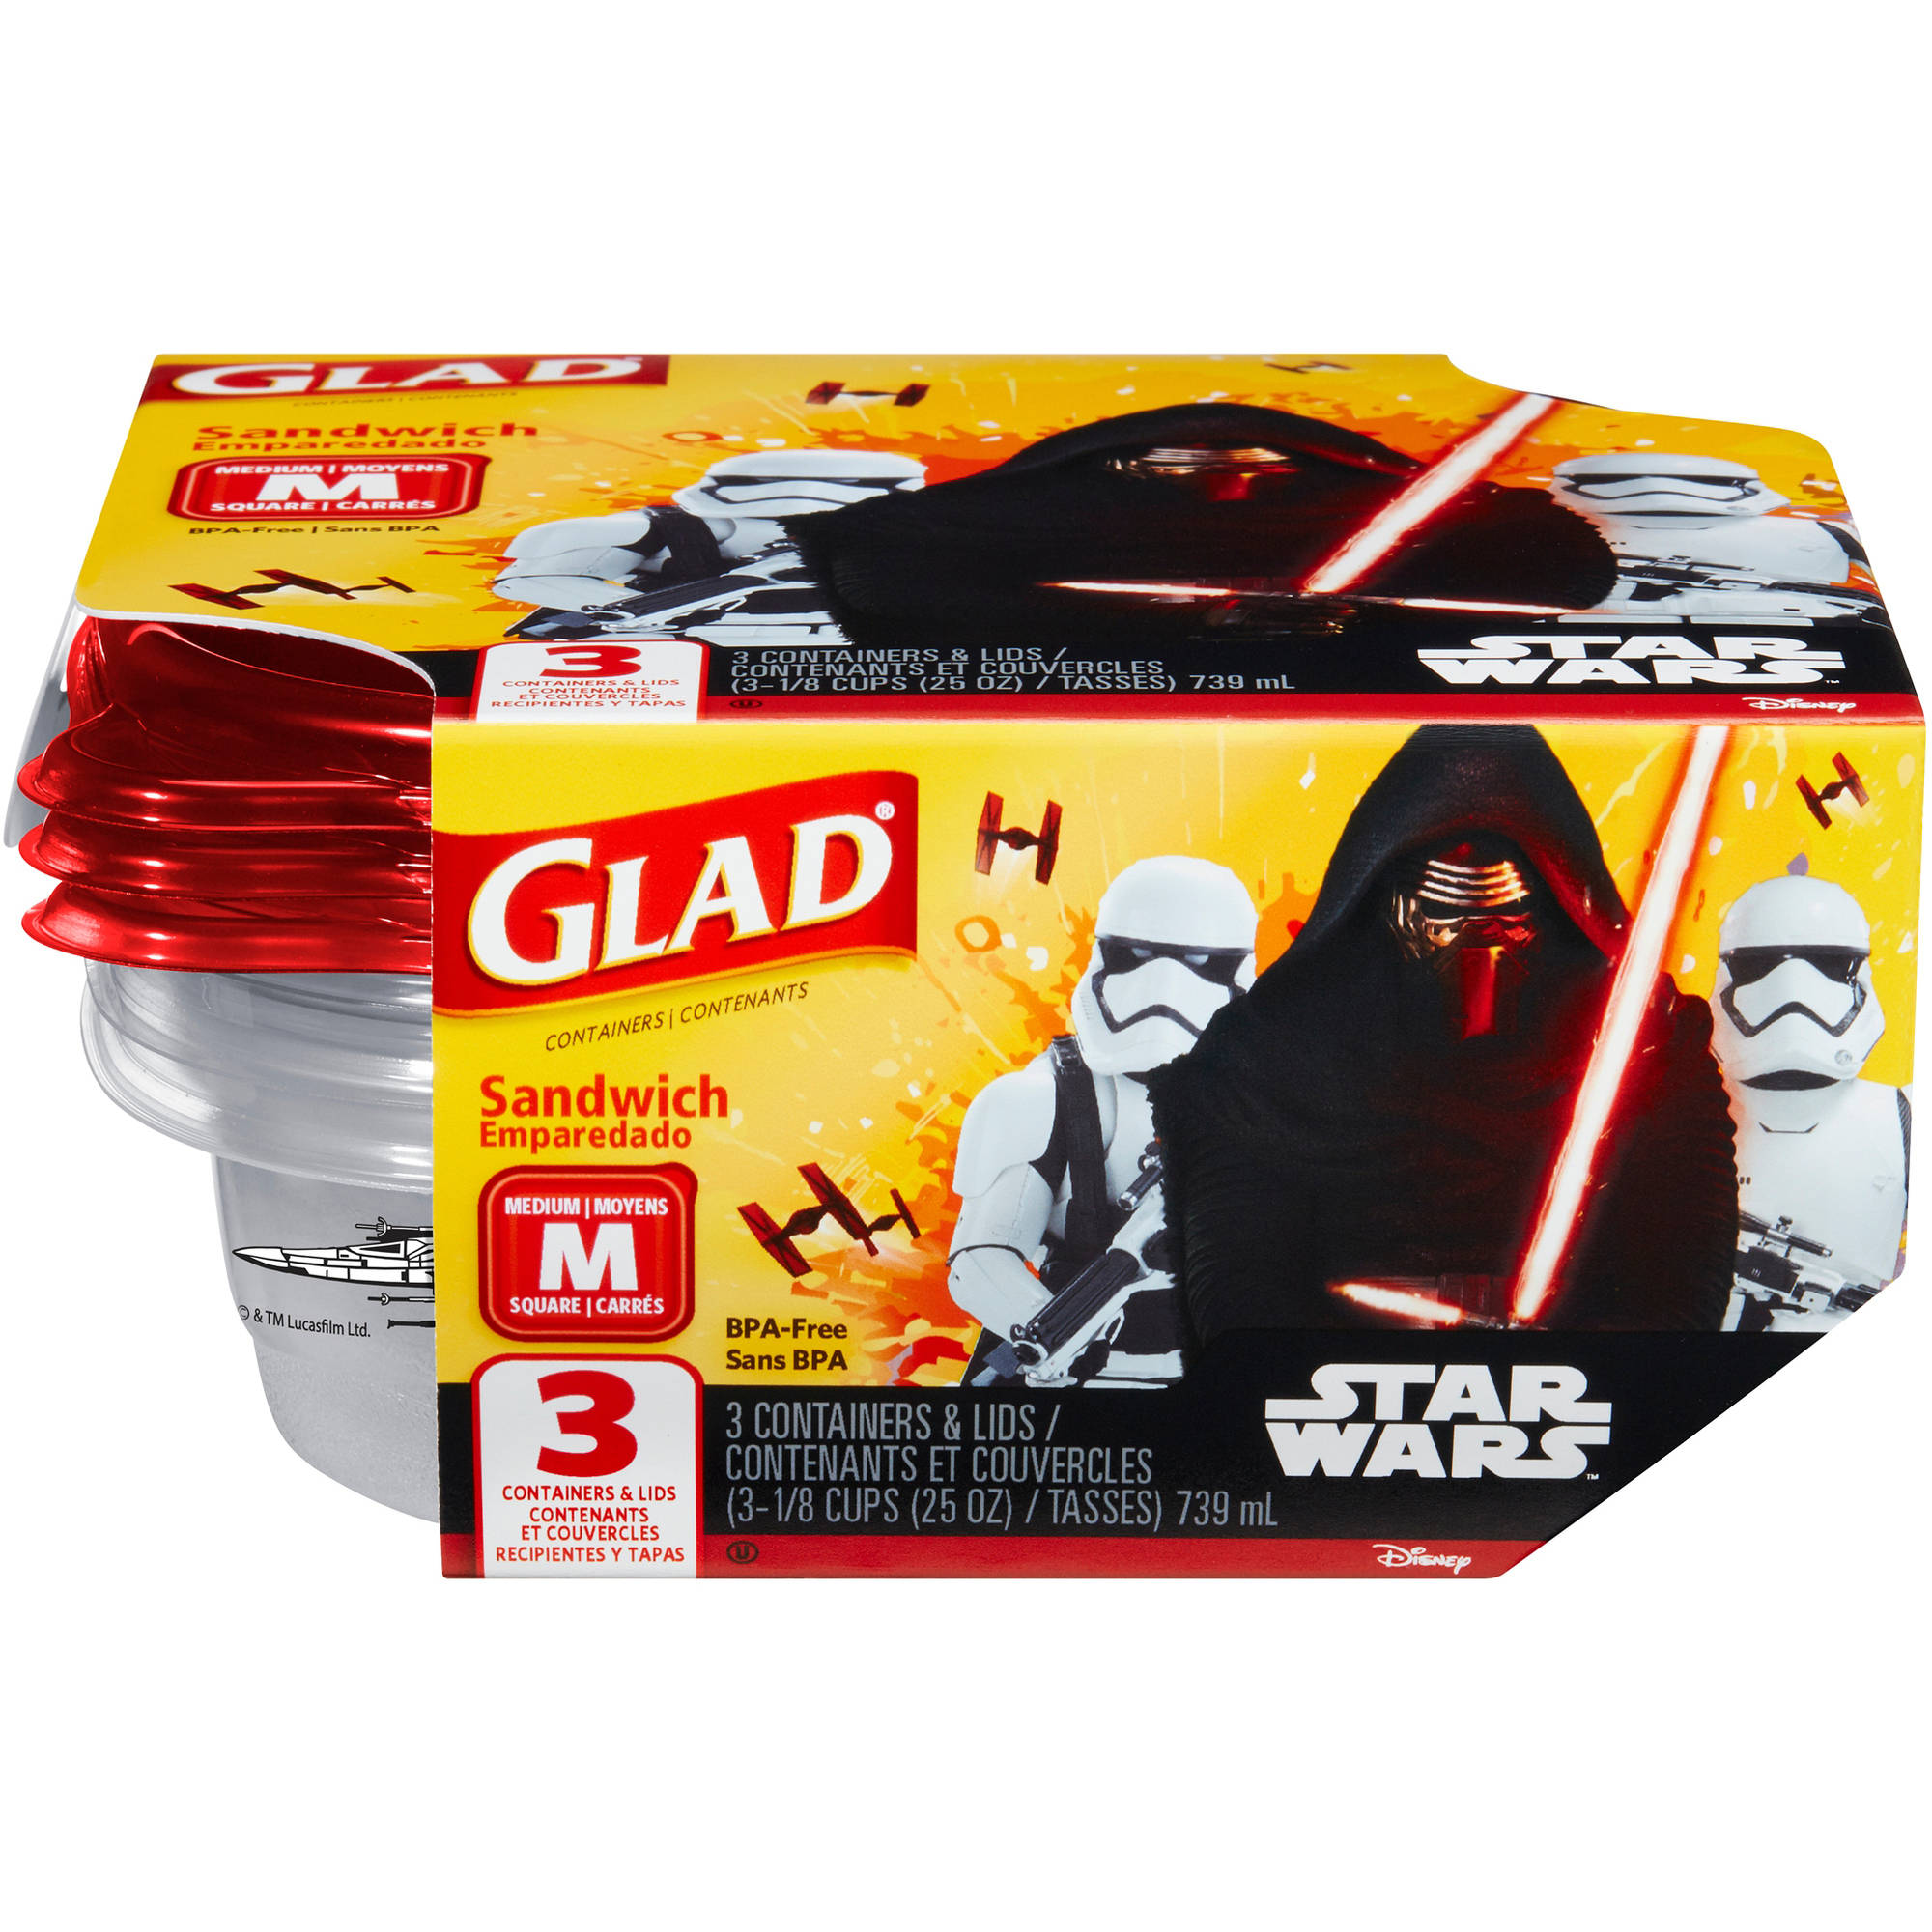 Glad Disney Star Wars Medium Sandwich Containers & Lids, 3 count